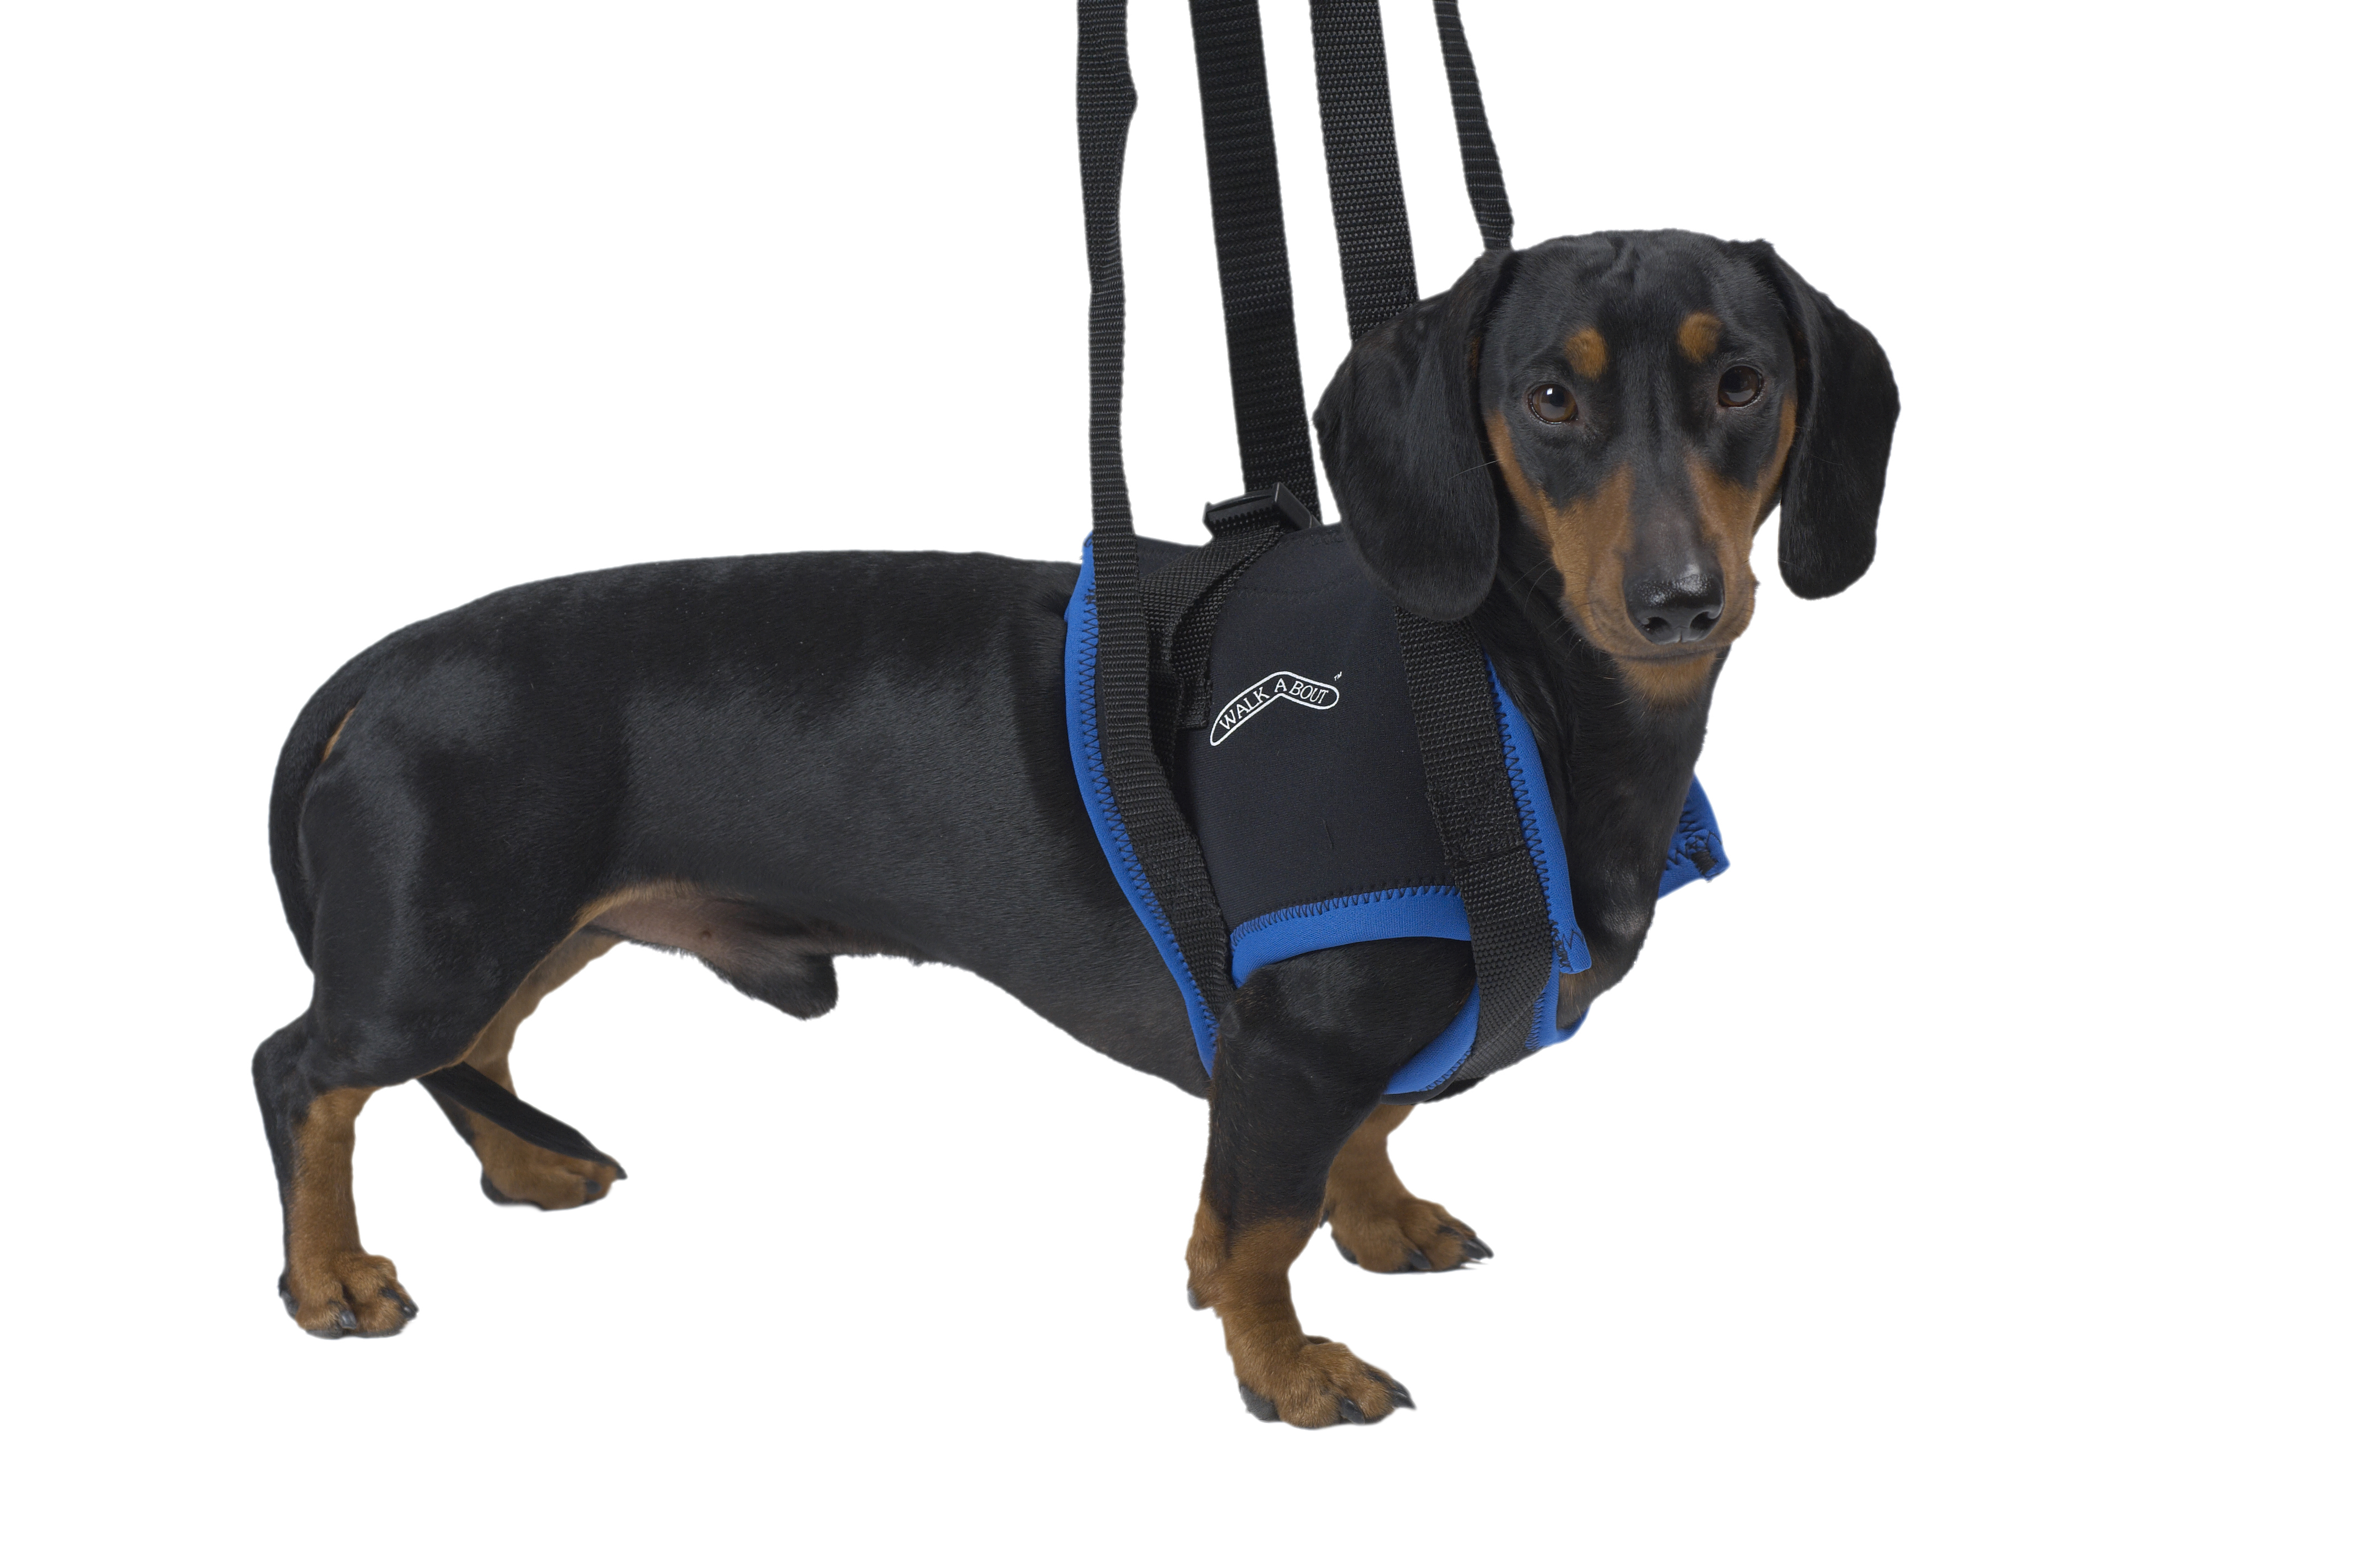 Walkabout lifting harness, front legs, large